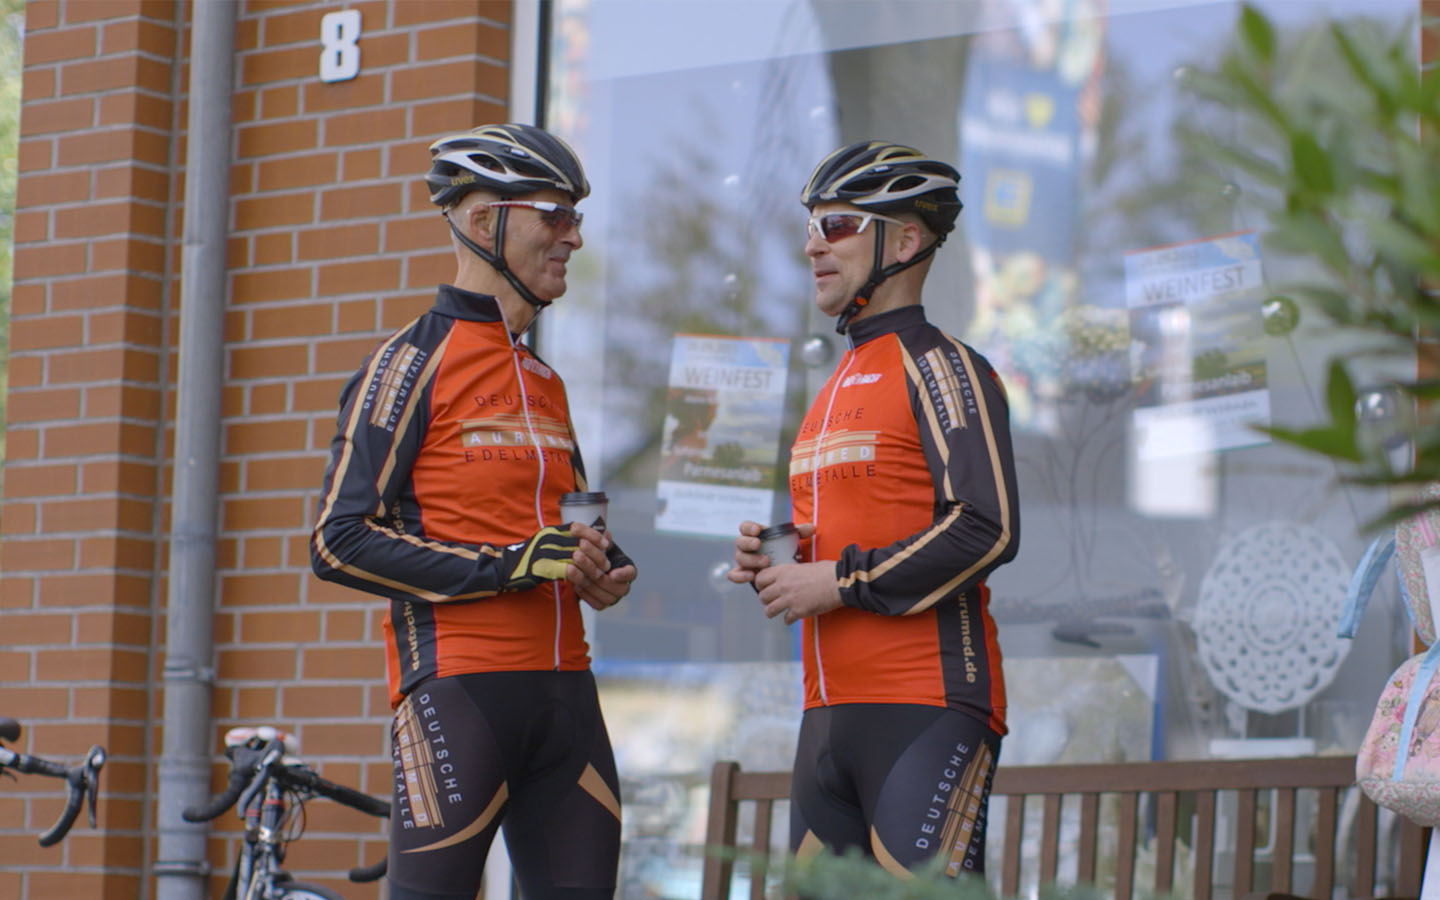 Two men wearing cycling attire chat as they hold coffee cups